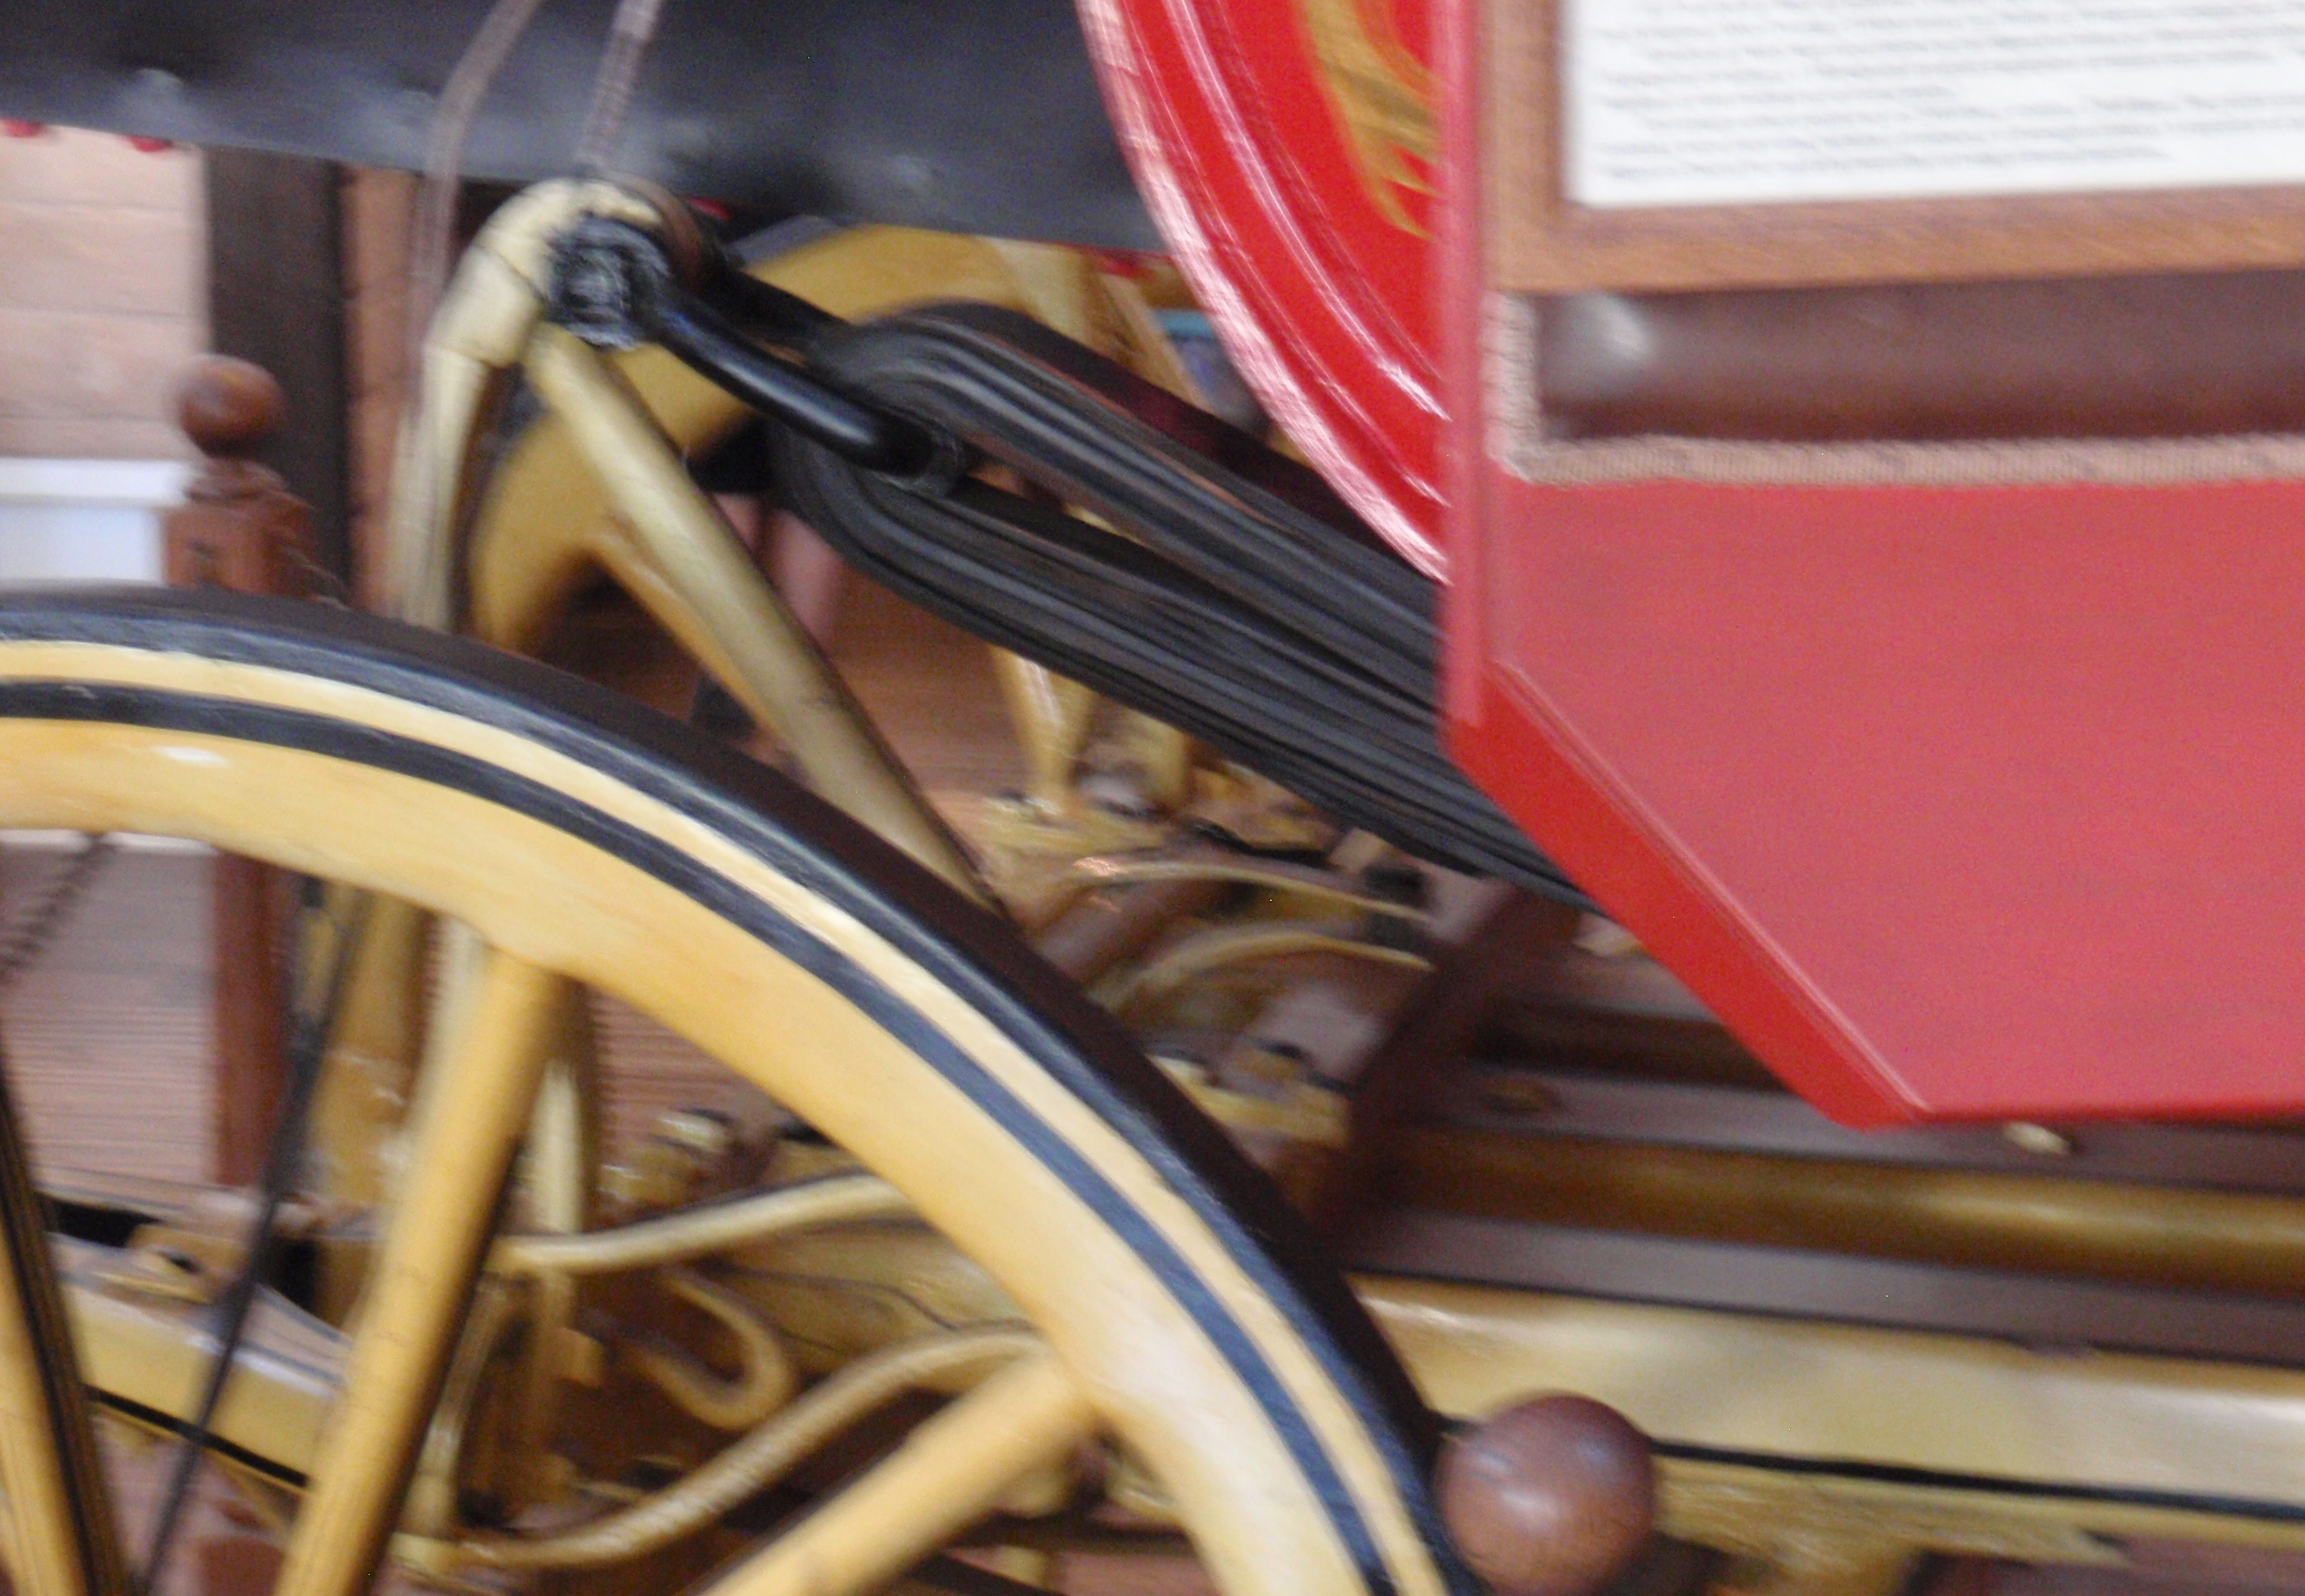 Out of focus view of suspension on a Concord coach. October 2016 photo at Wells Fargo's museum in San Diego by James Ulvog.